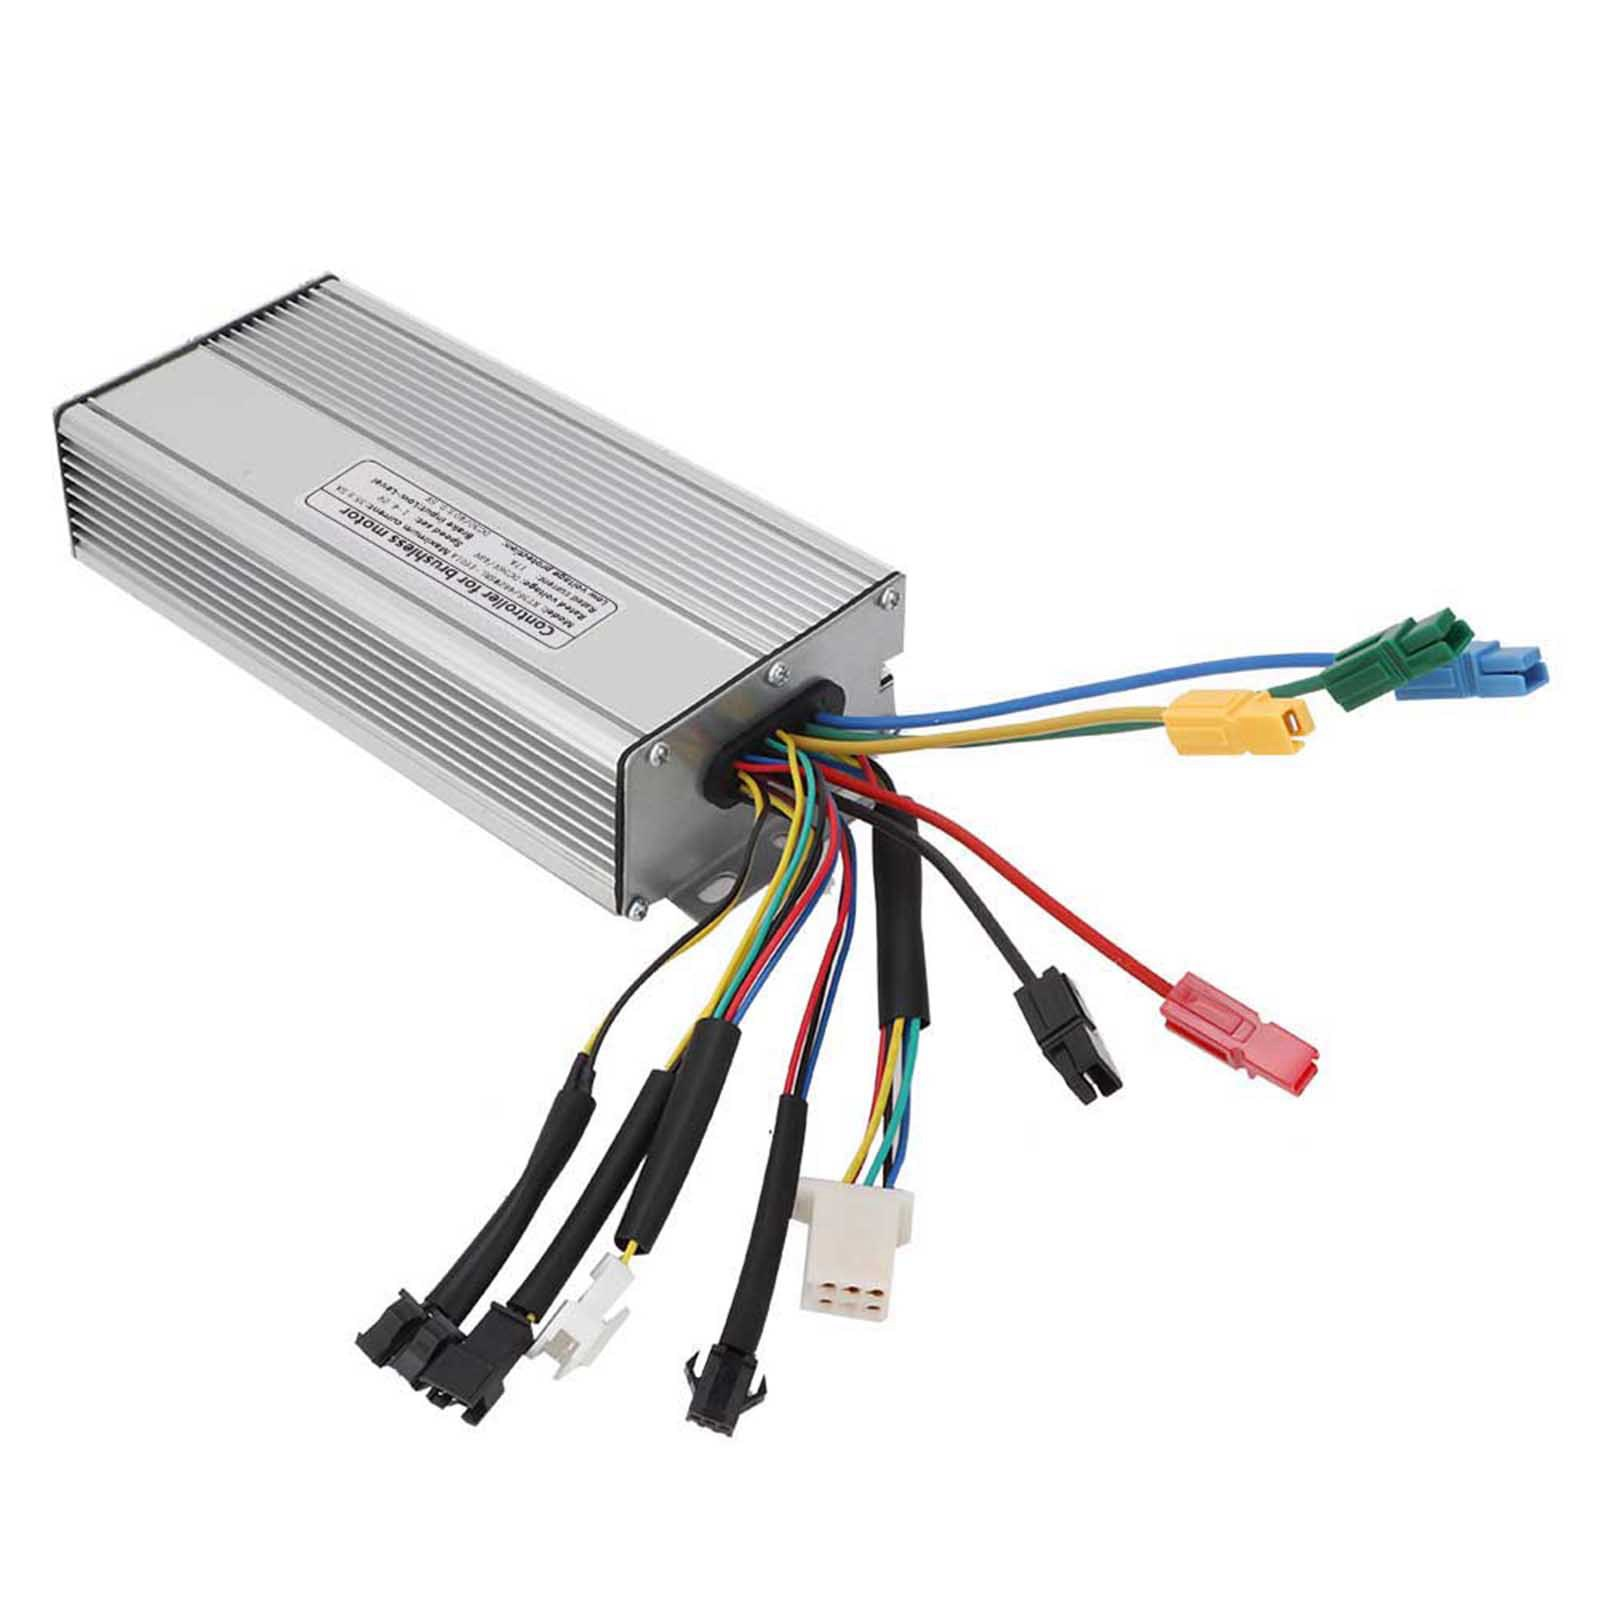 24V-36V-48V-Electric-Bicycle-Bike-Scooter-Brushless-Motor-Speed-Controller-Kit thumbnail 30